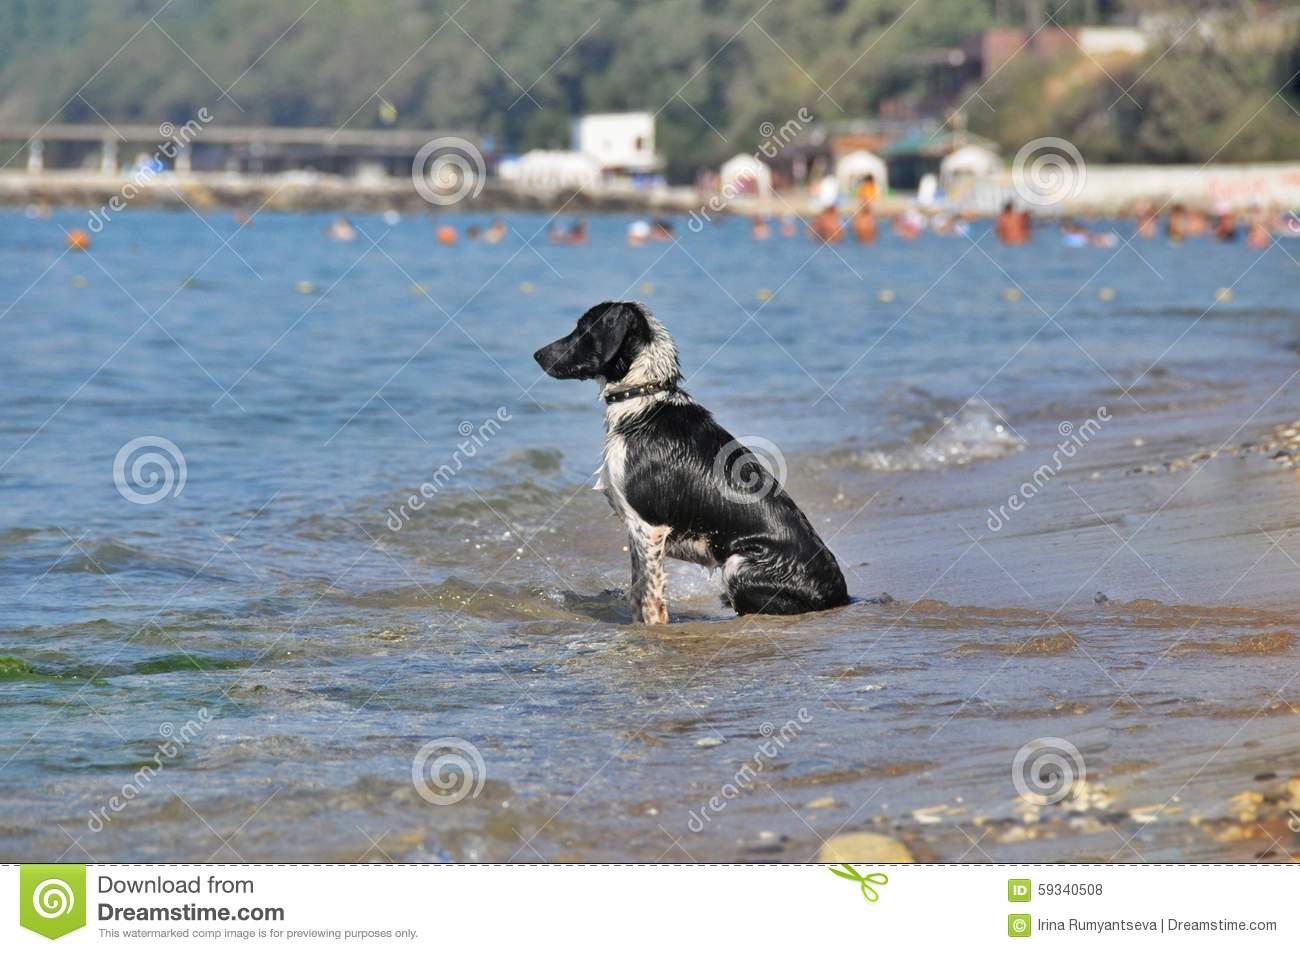 Sadness dogs of the sea